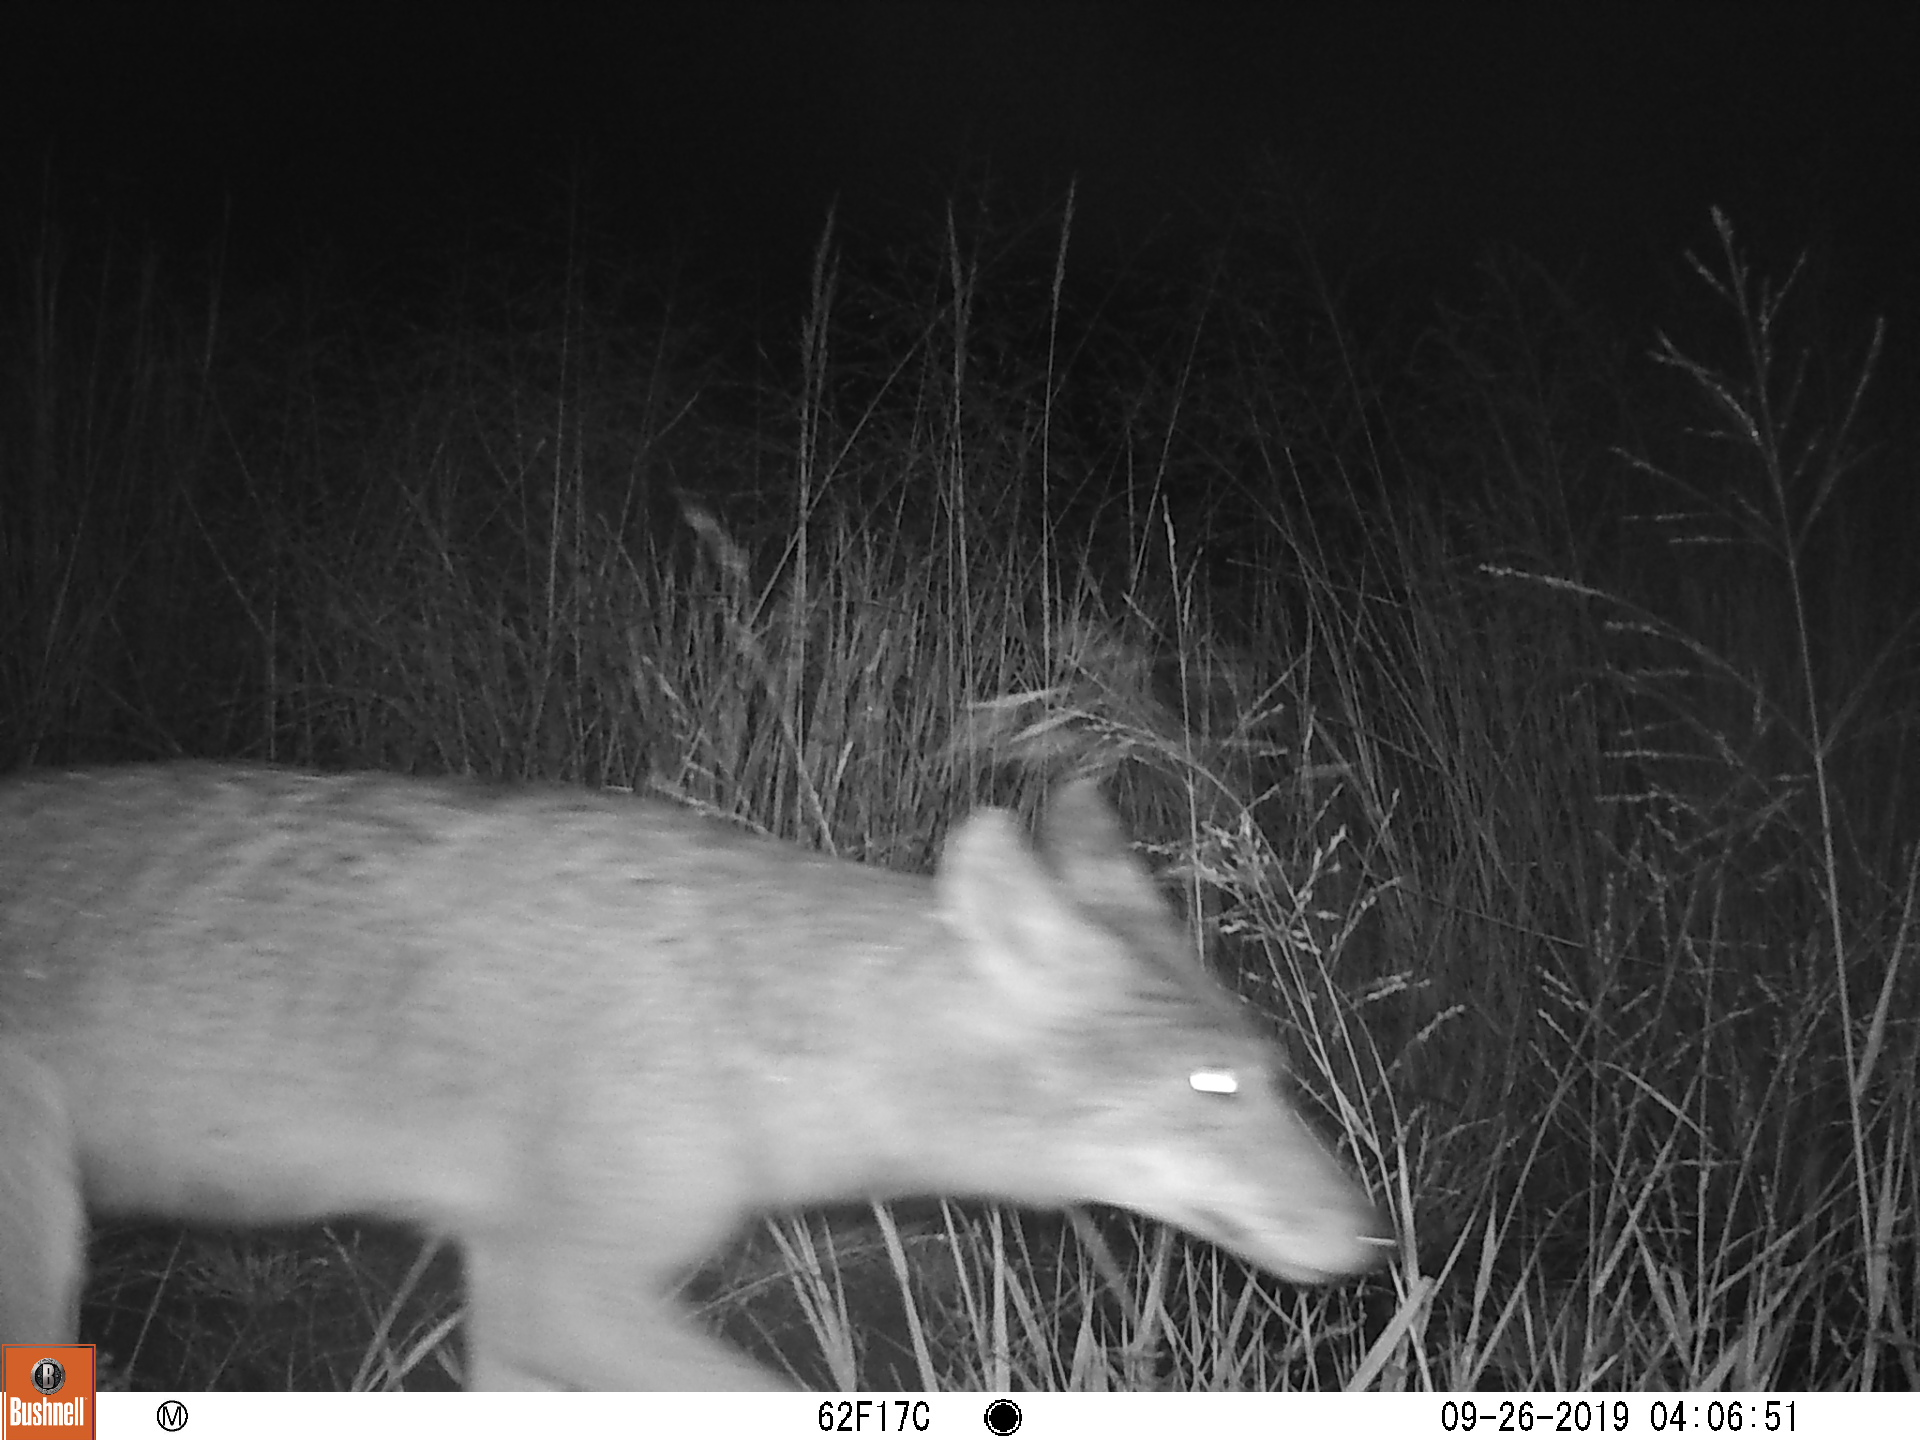 A coyote spotted on a game camera at an Urban prairie in Northwest Arkansas.